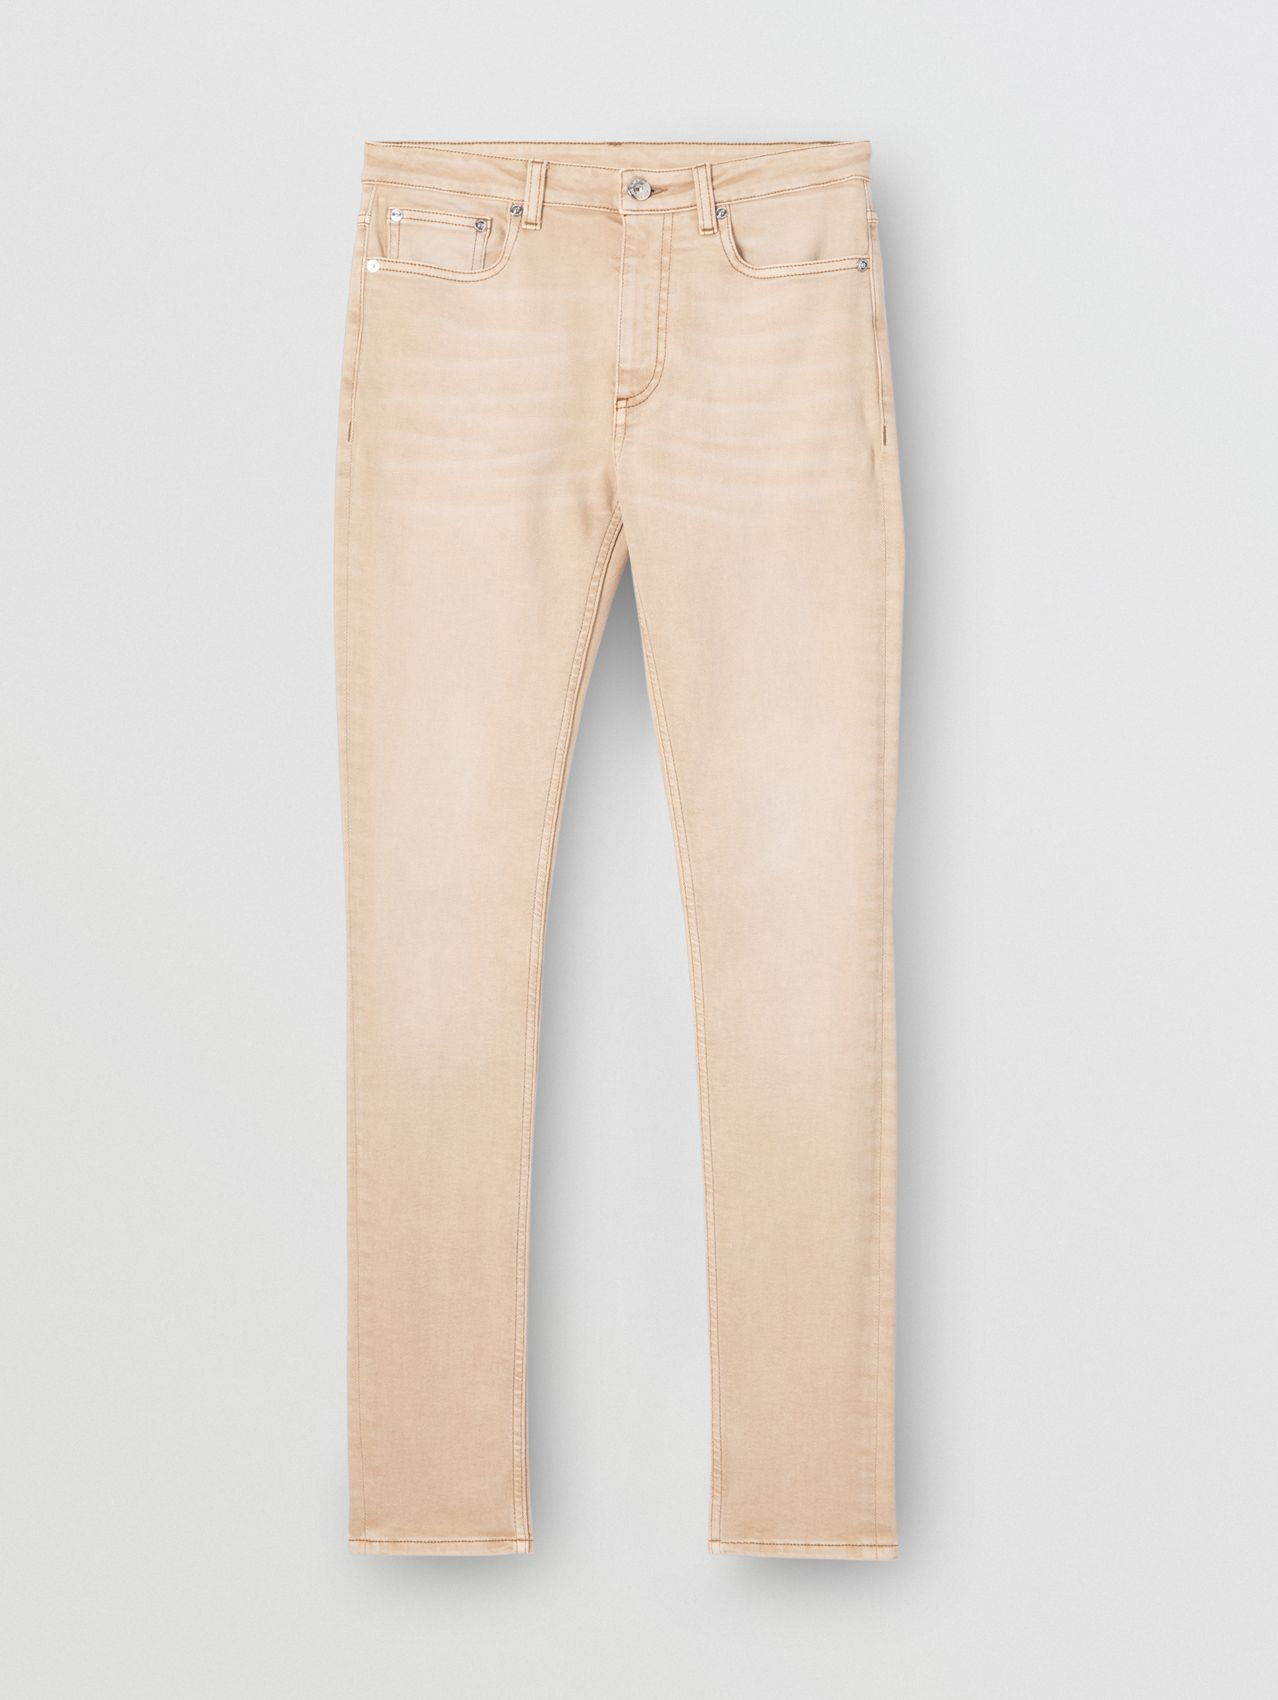 Skinny Fit Washed Japanese Denim Jeans in Honey